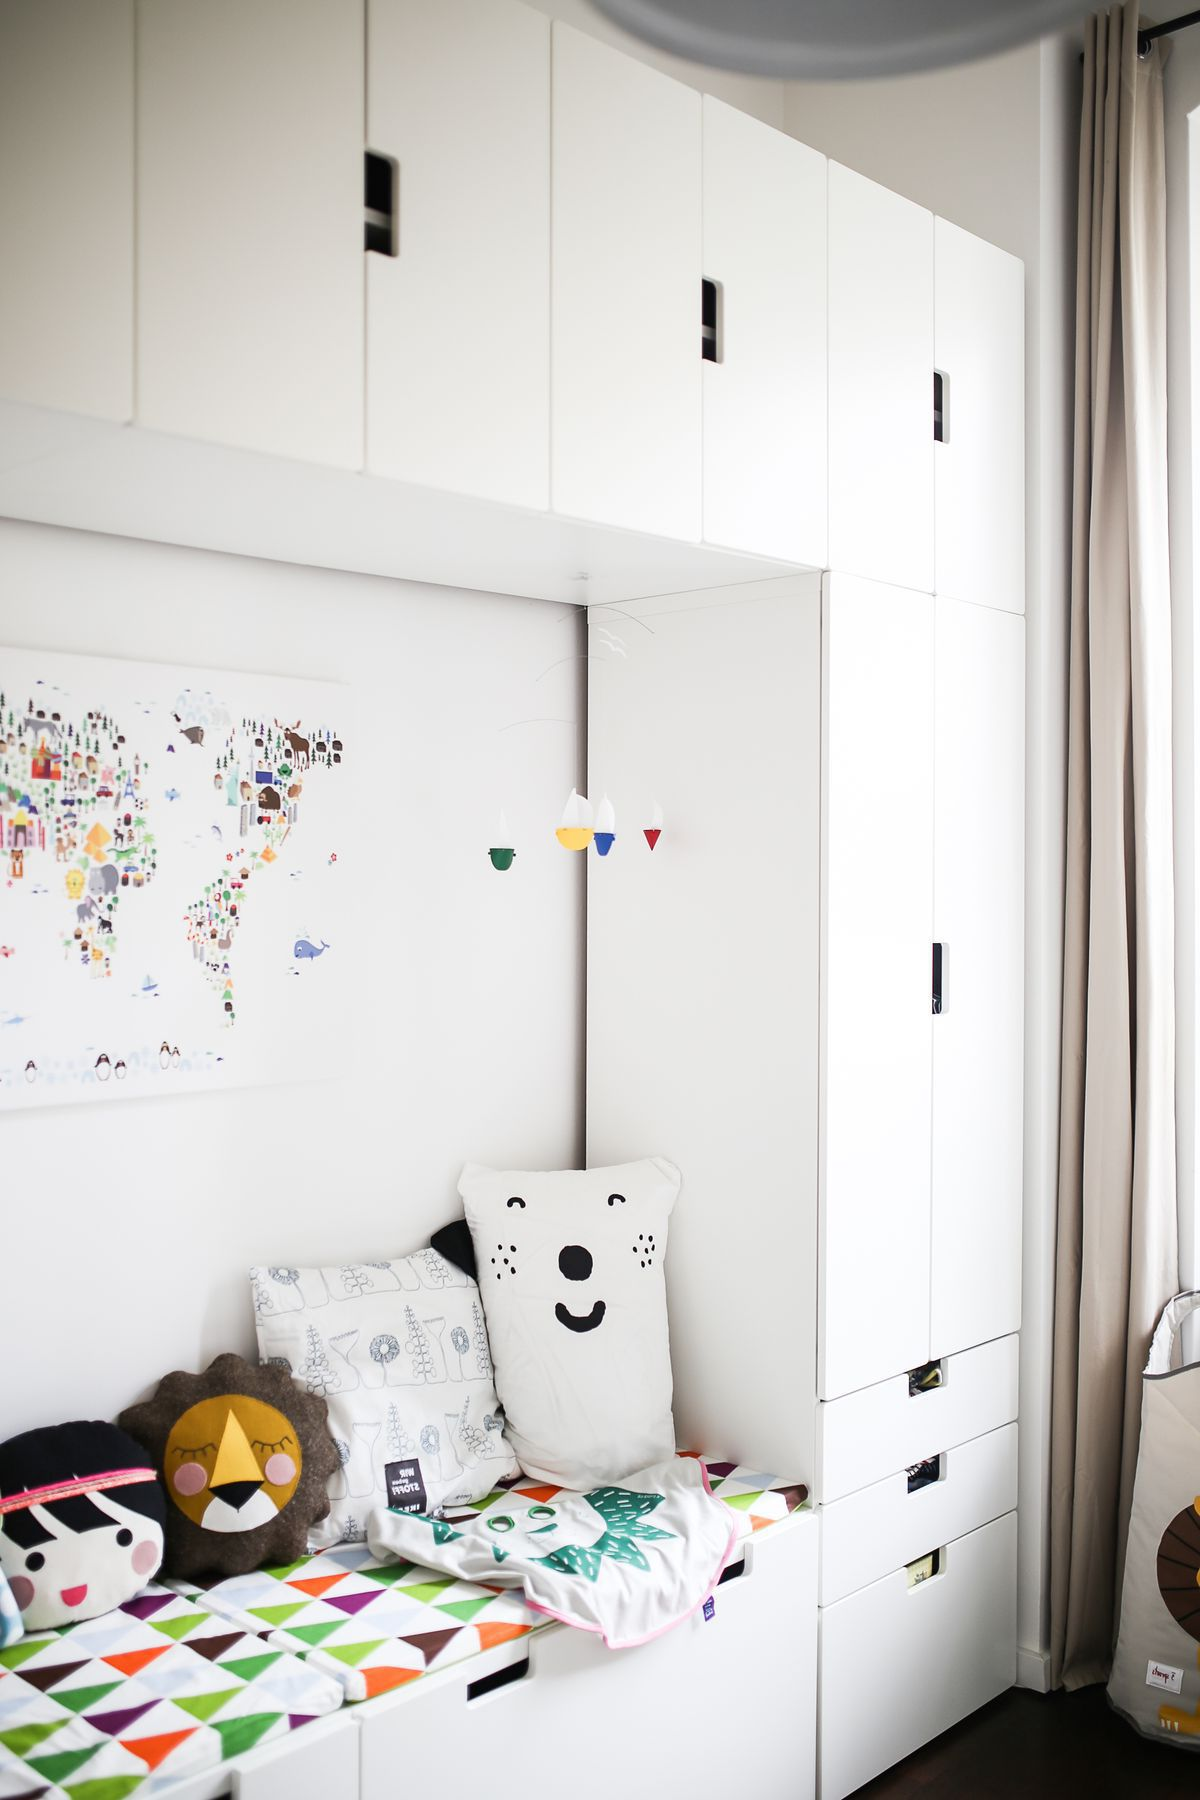 couch und speicherorganisation im kinderzimmer mit hilfe. Black Bedroom Furniture Sets. Home Design Ideas